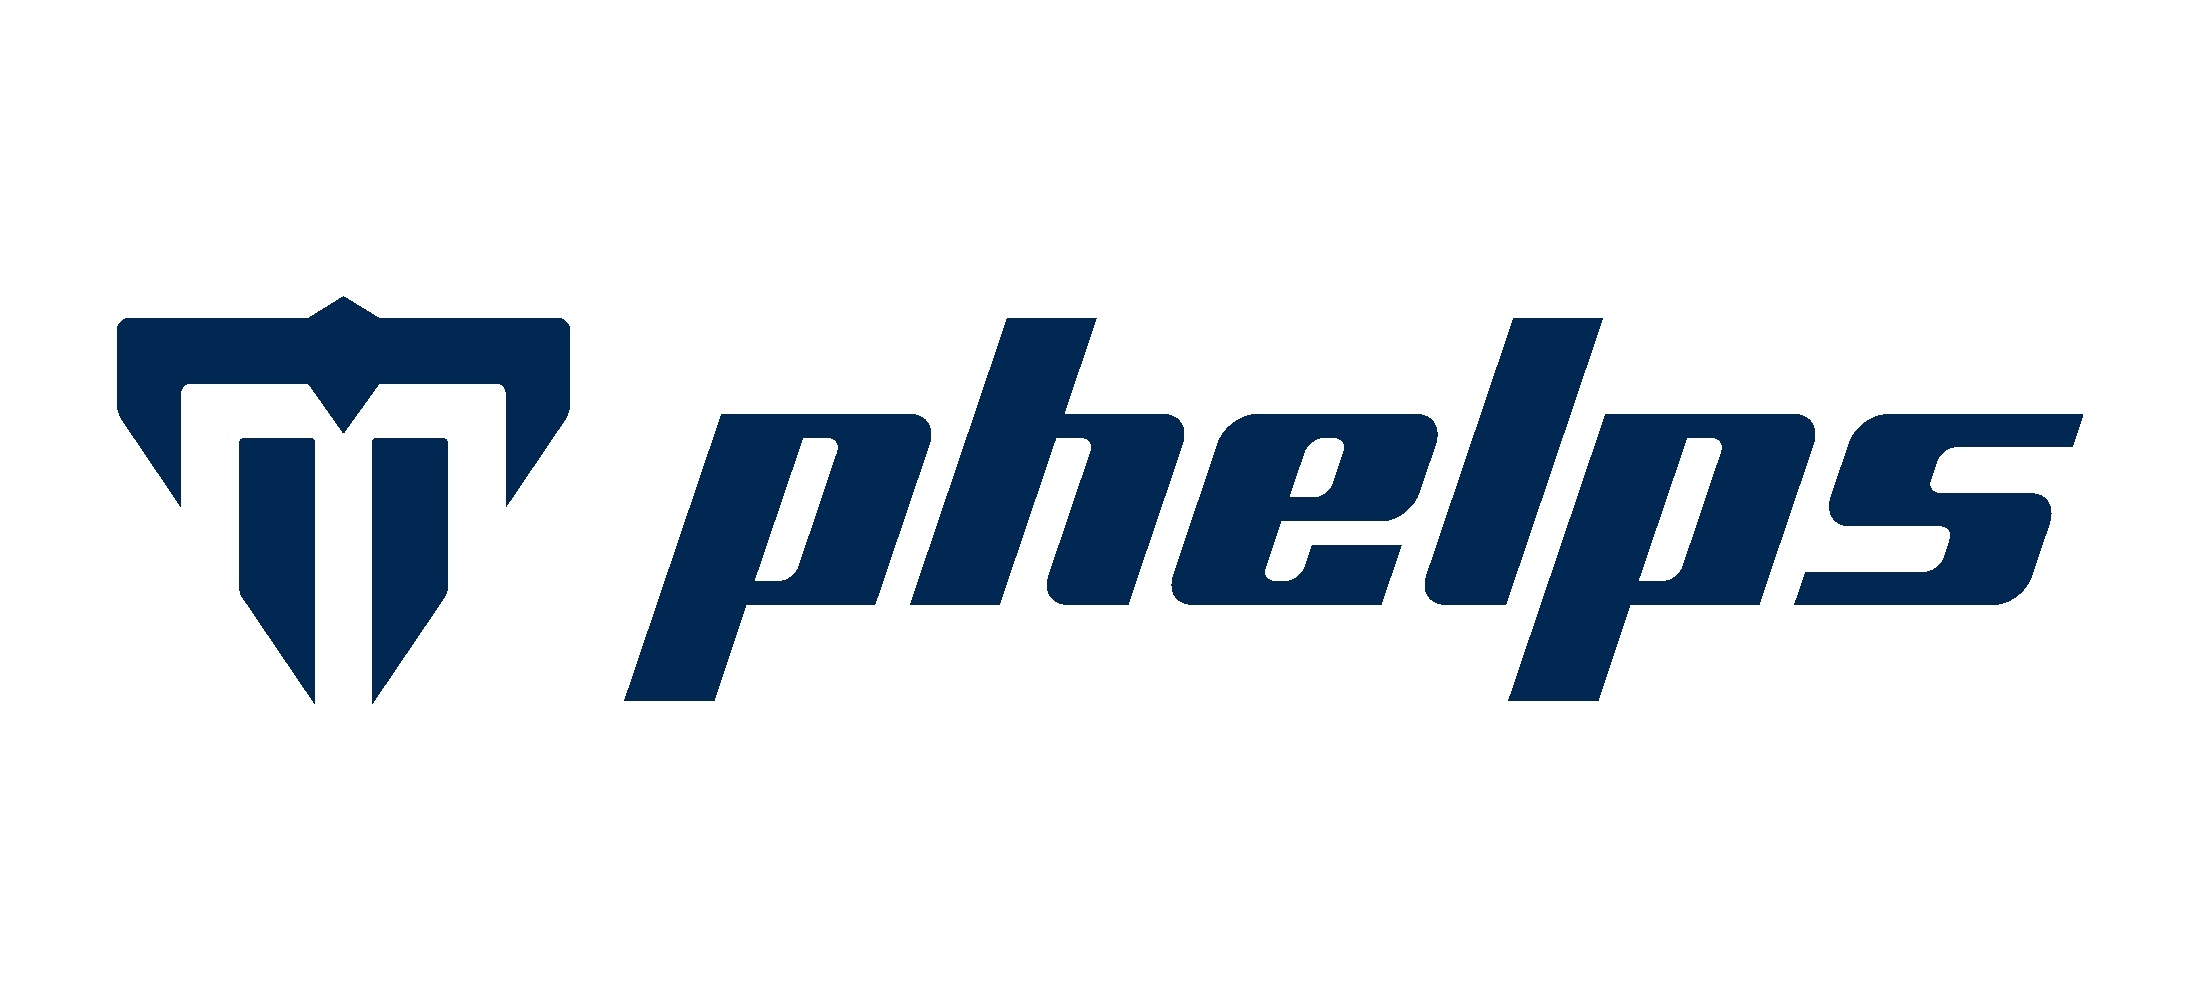 Phelps Brand Welcomes World Champion Swimmer Penny Oleksiak as Global Brand  Ambassador | Business Wire